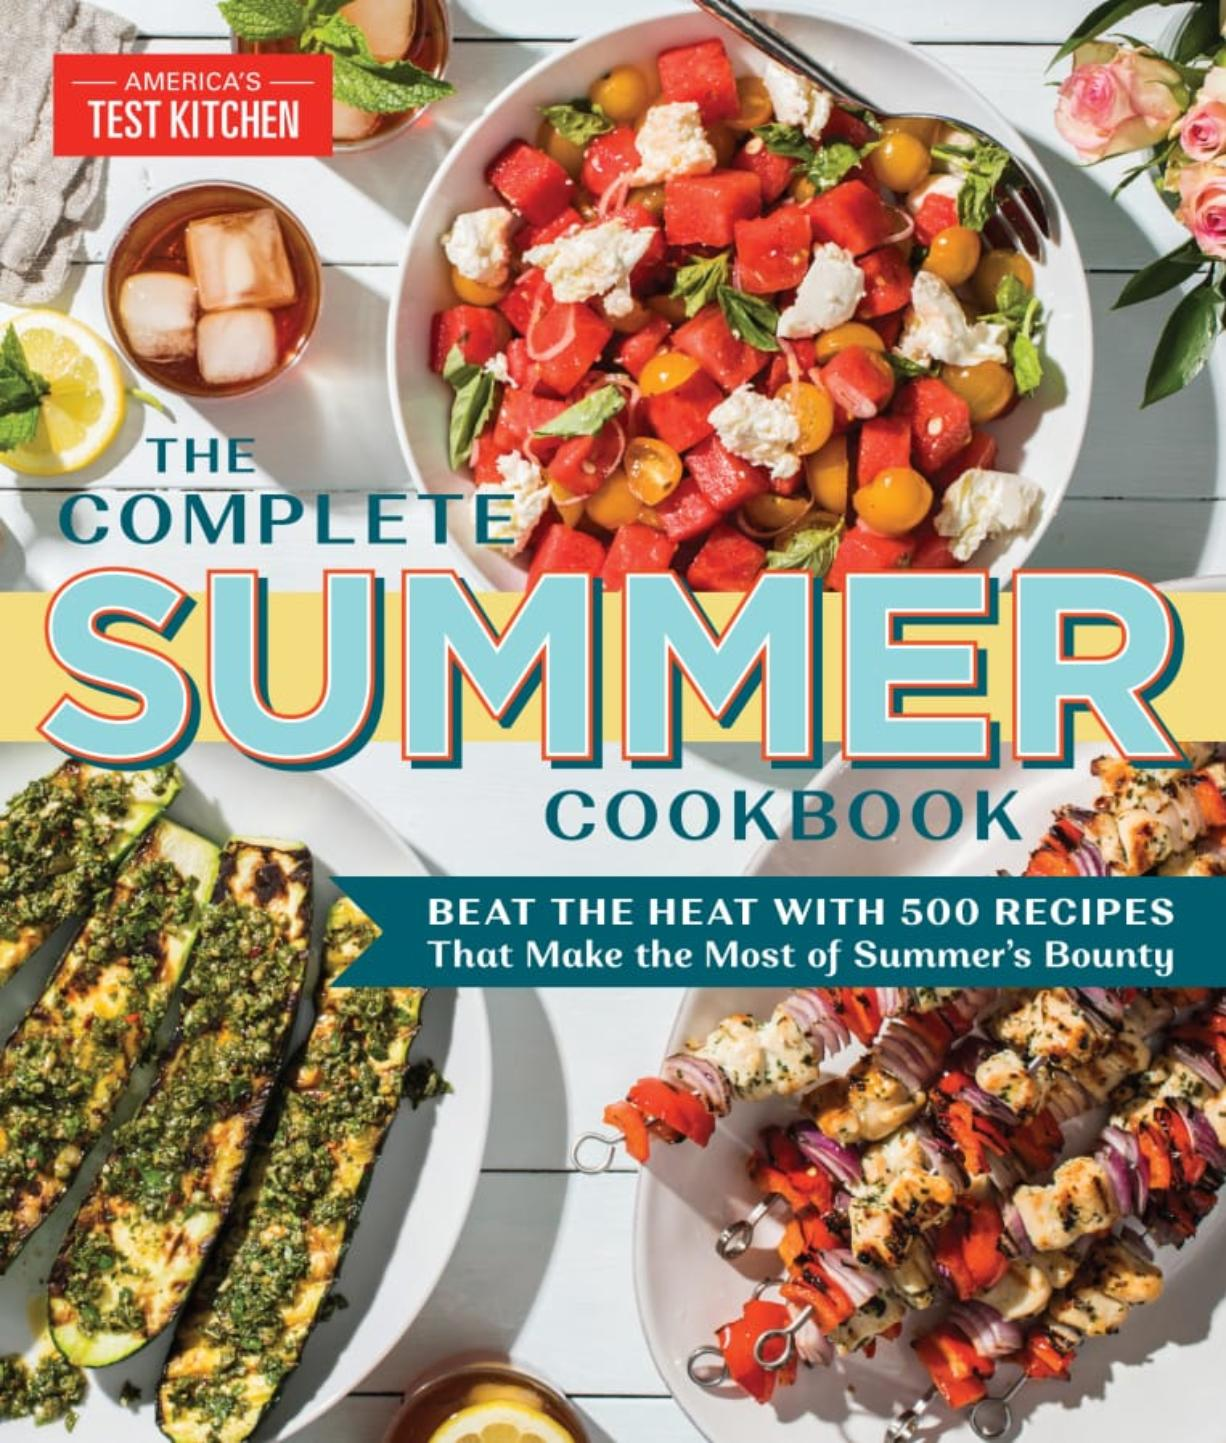 The Complete Summer Cookbook (America's Test Kitchen/TNS)